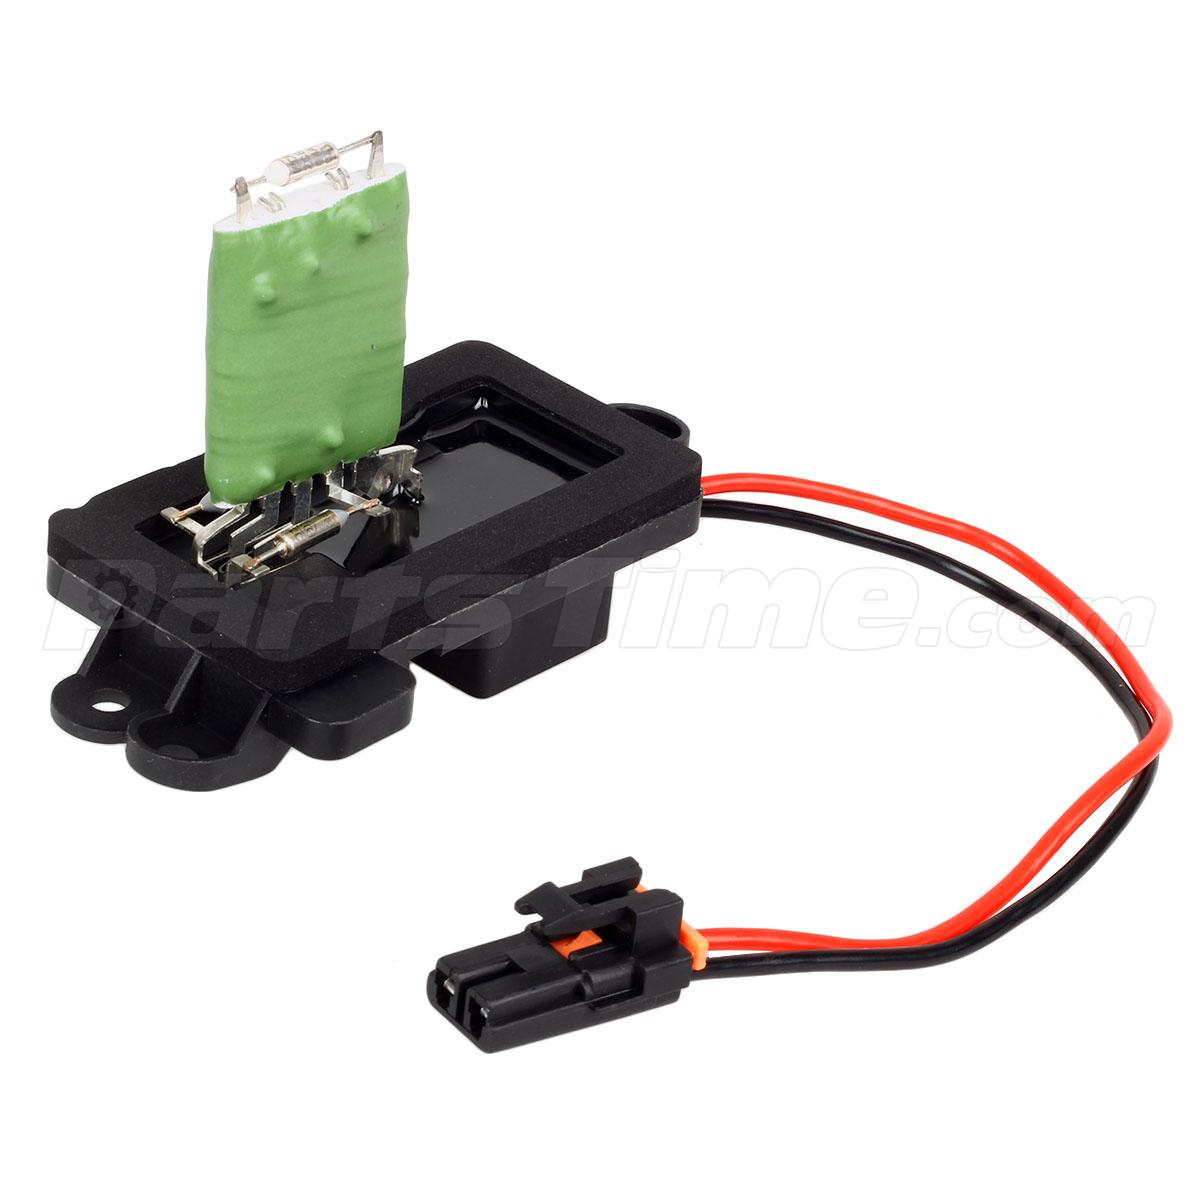 145392 6?rn=5191563 89019088 heater blower motor resistor for cadillac chevy gmc w 7-wire blower motor resistor harness at fashall.co